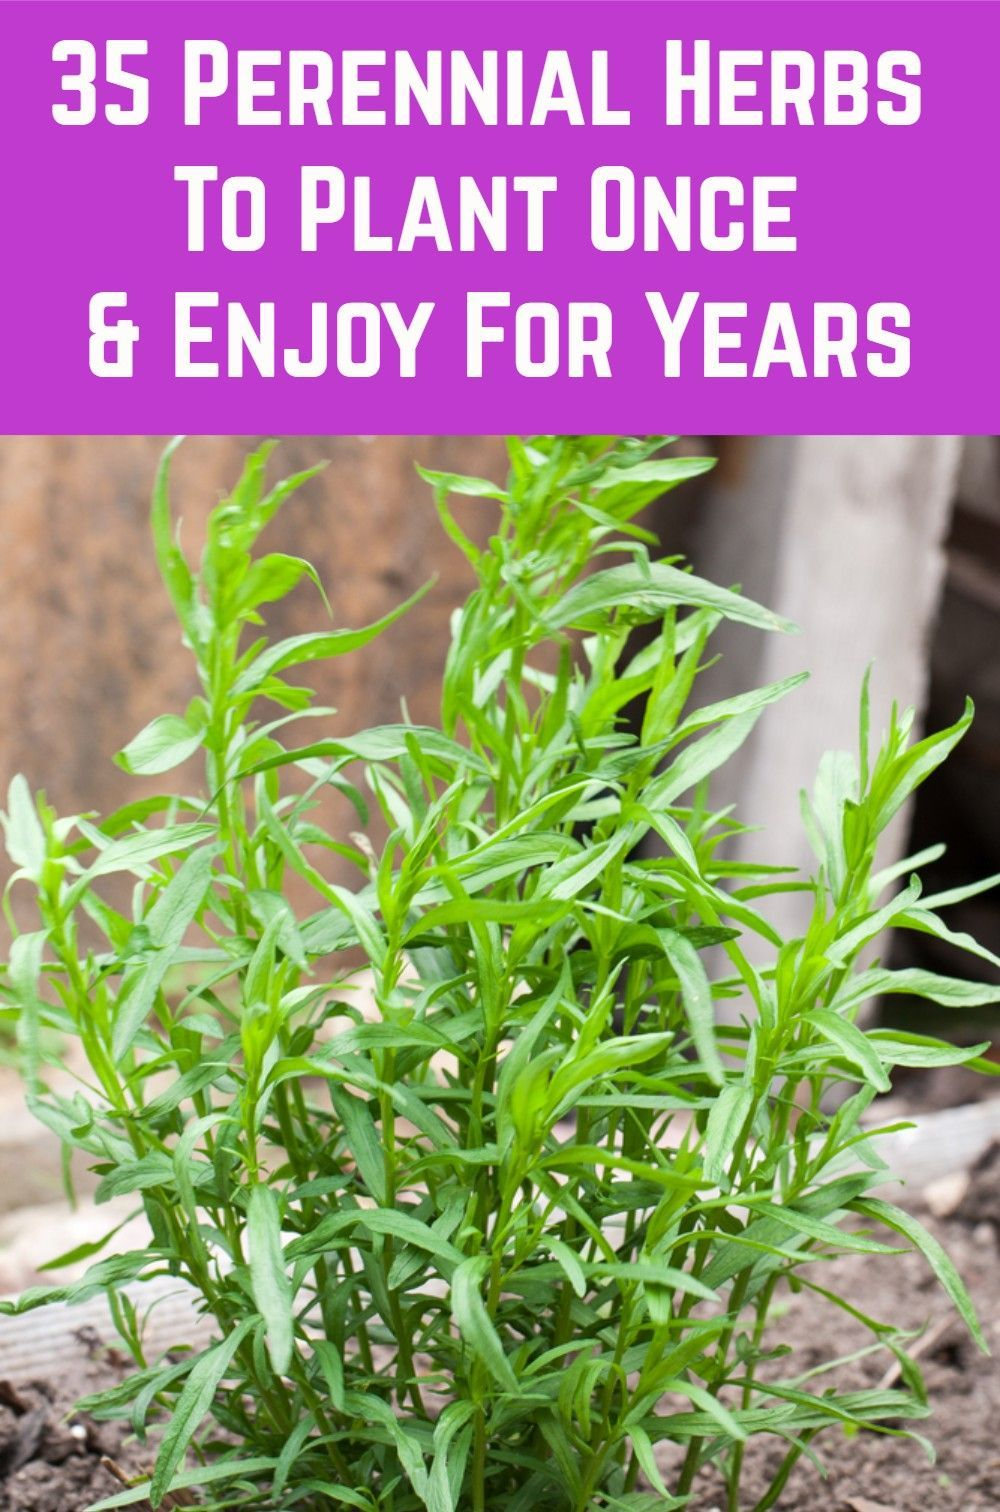 35 Perennial Herbs To Plant Once & Enjoy For Years is part of Perennial herbs, Planting herbs, Plants, Veggie garden, Herbs, Perennials - Herb gardening is a fantastic gateway into gardening for those who are new to growing their own  There are many herbs you can easily grow even if you don't have a garden at all  All you need is a sunny windowsill  But herbs are also important for established gardeners  Incorporating a range of perennial herbs   Read On →